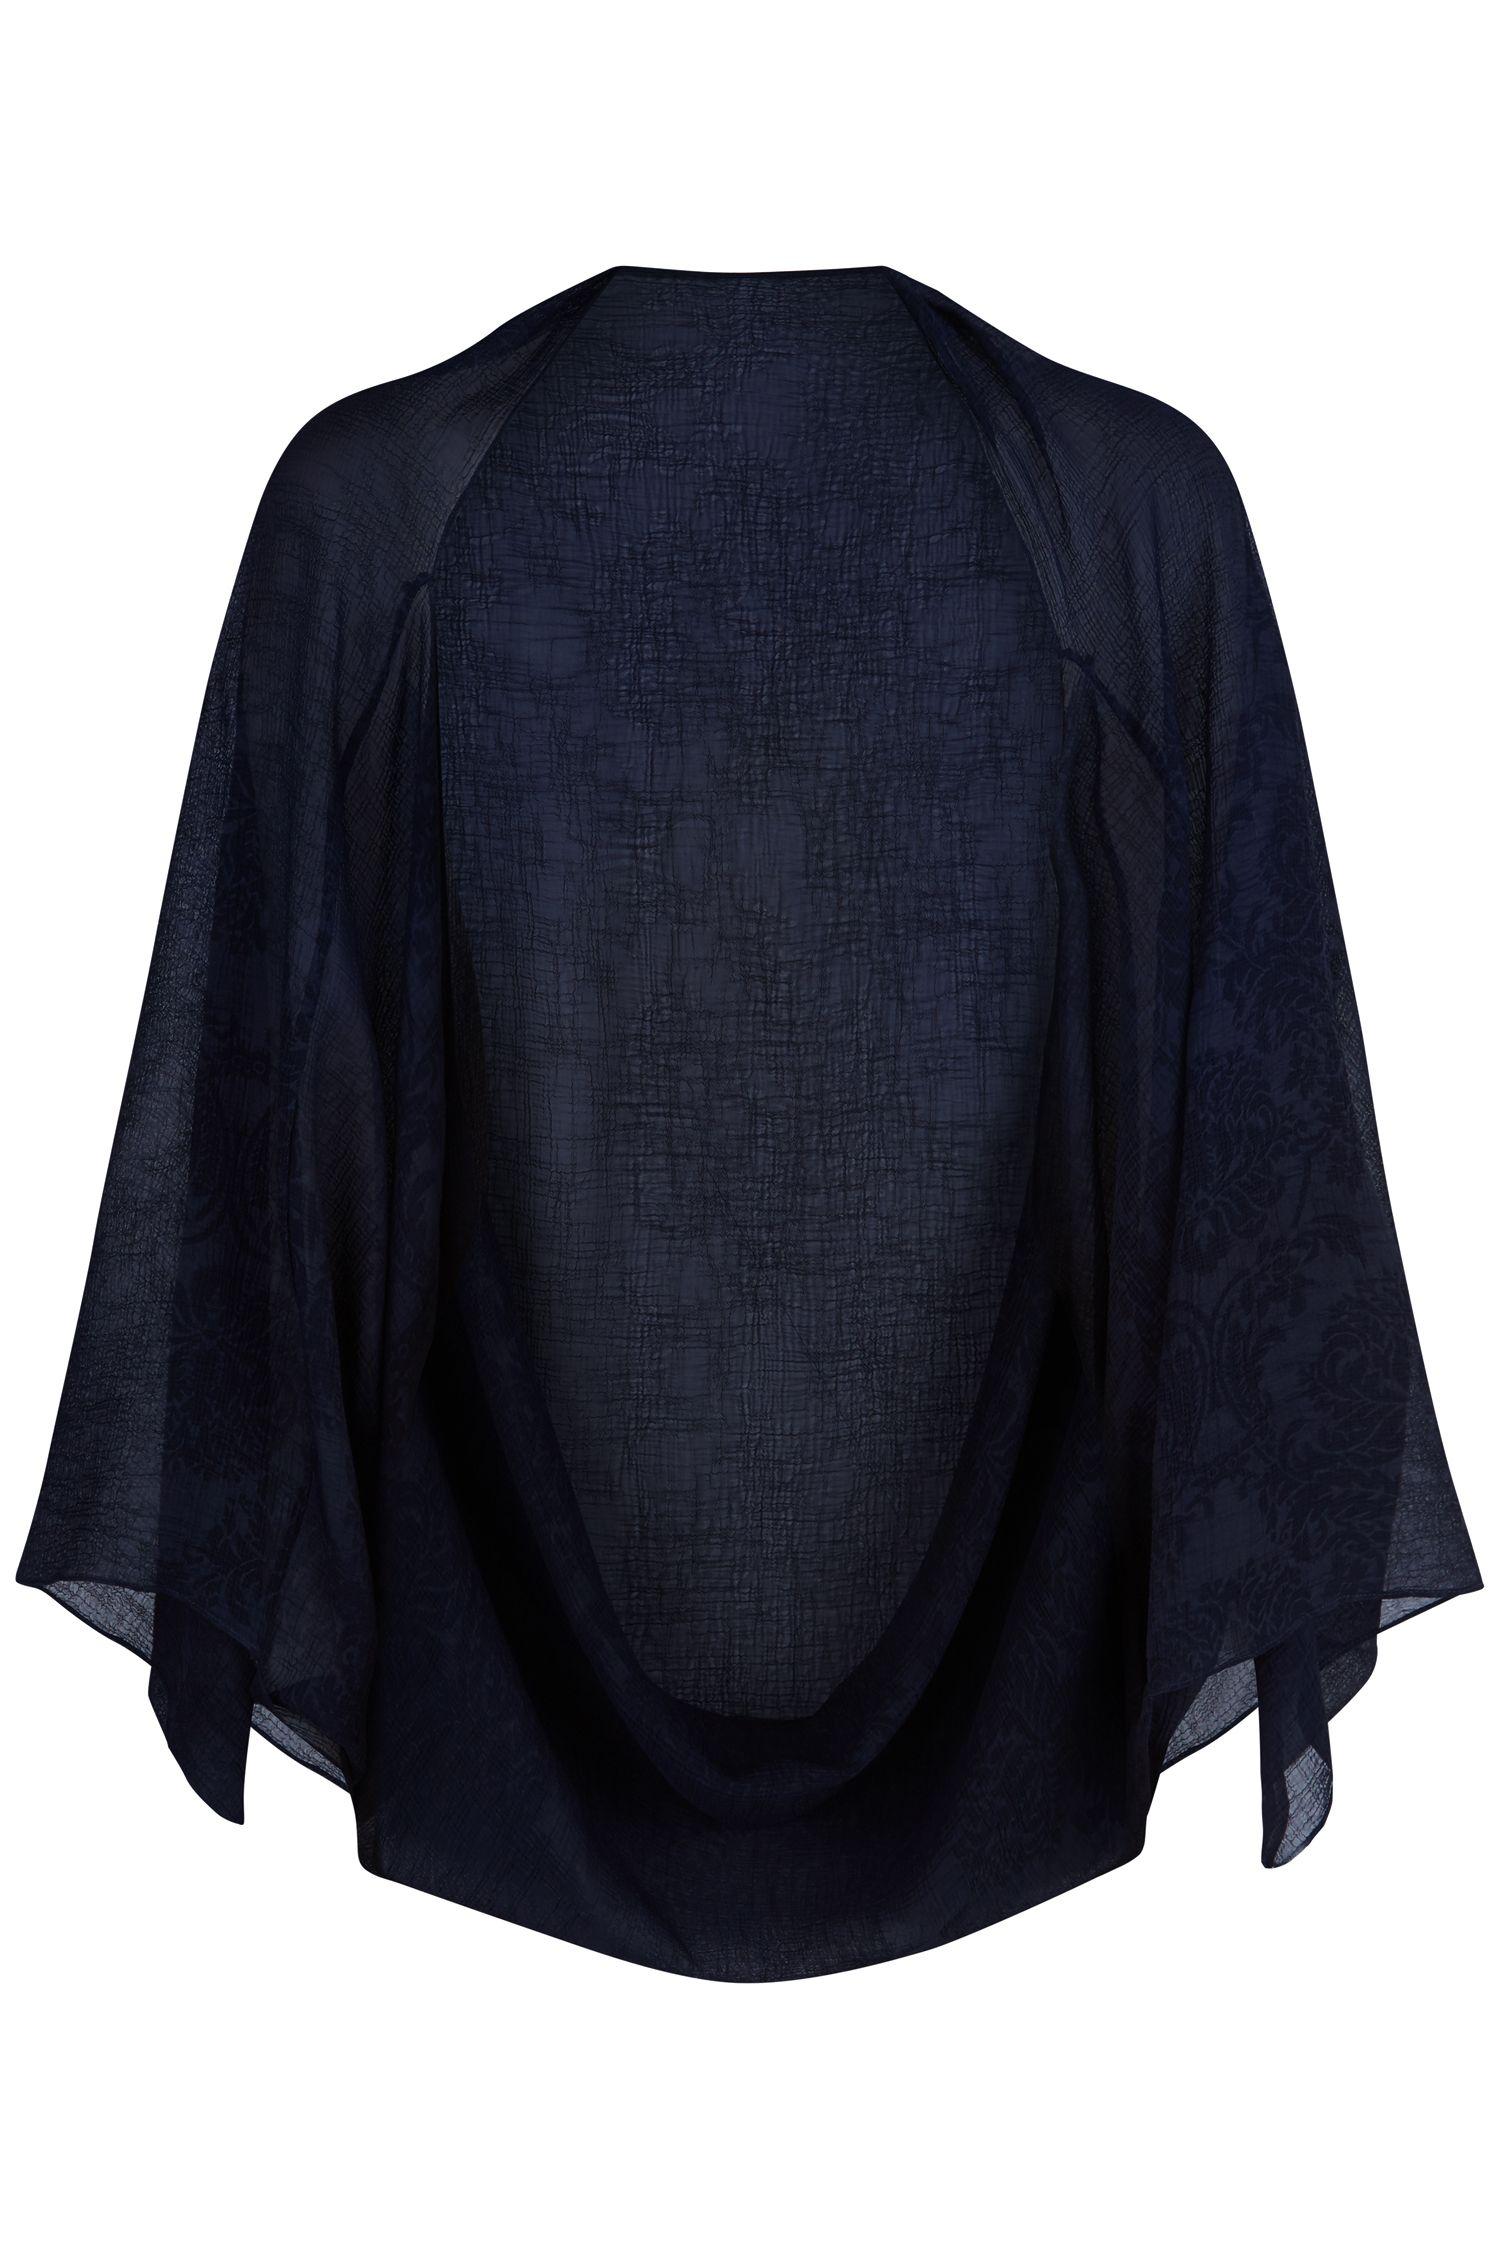 Damsel in a Dress Embossed Cape, Blue